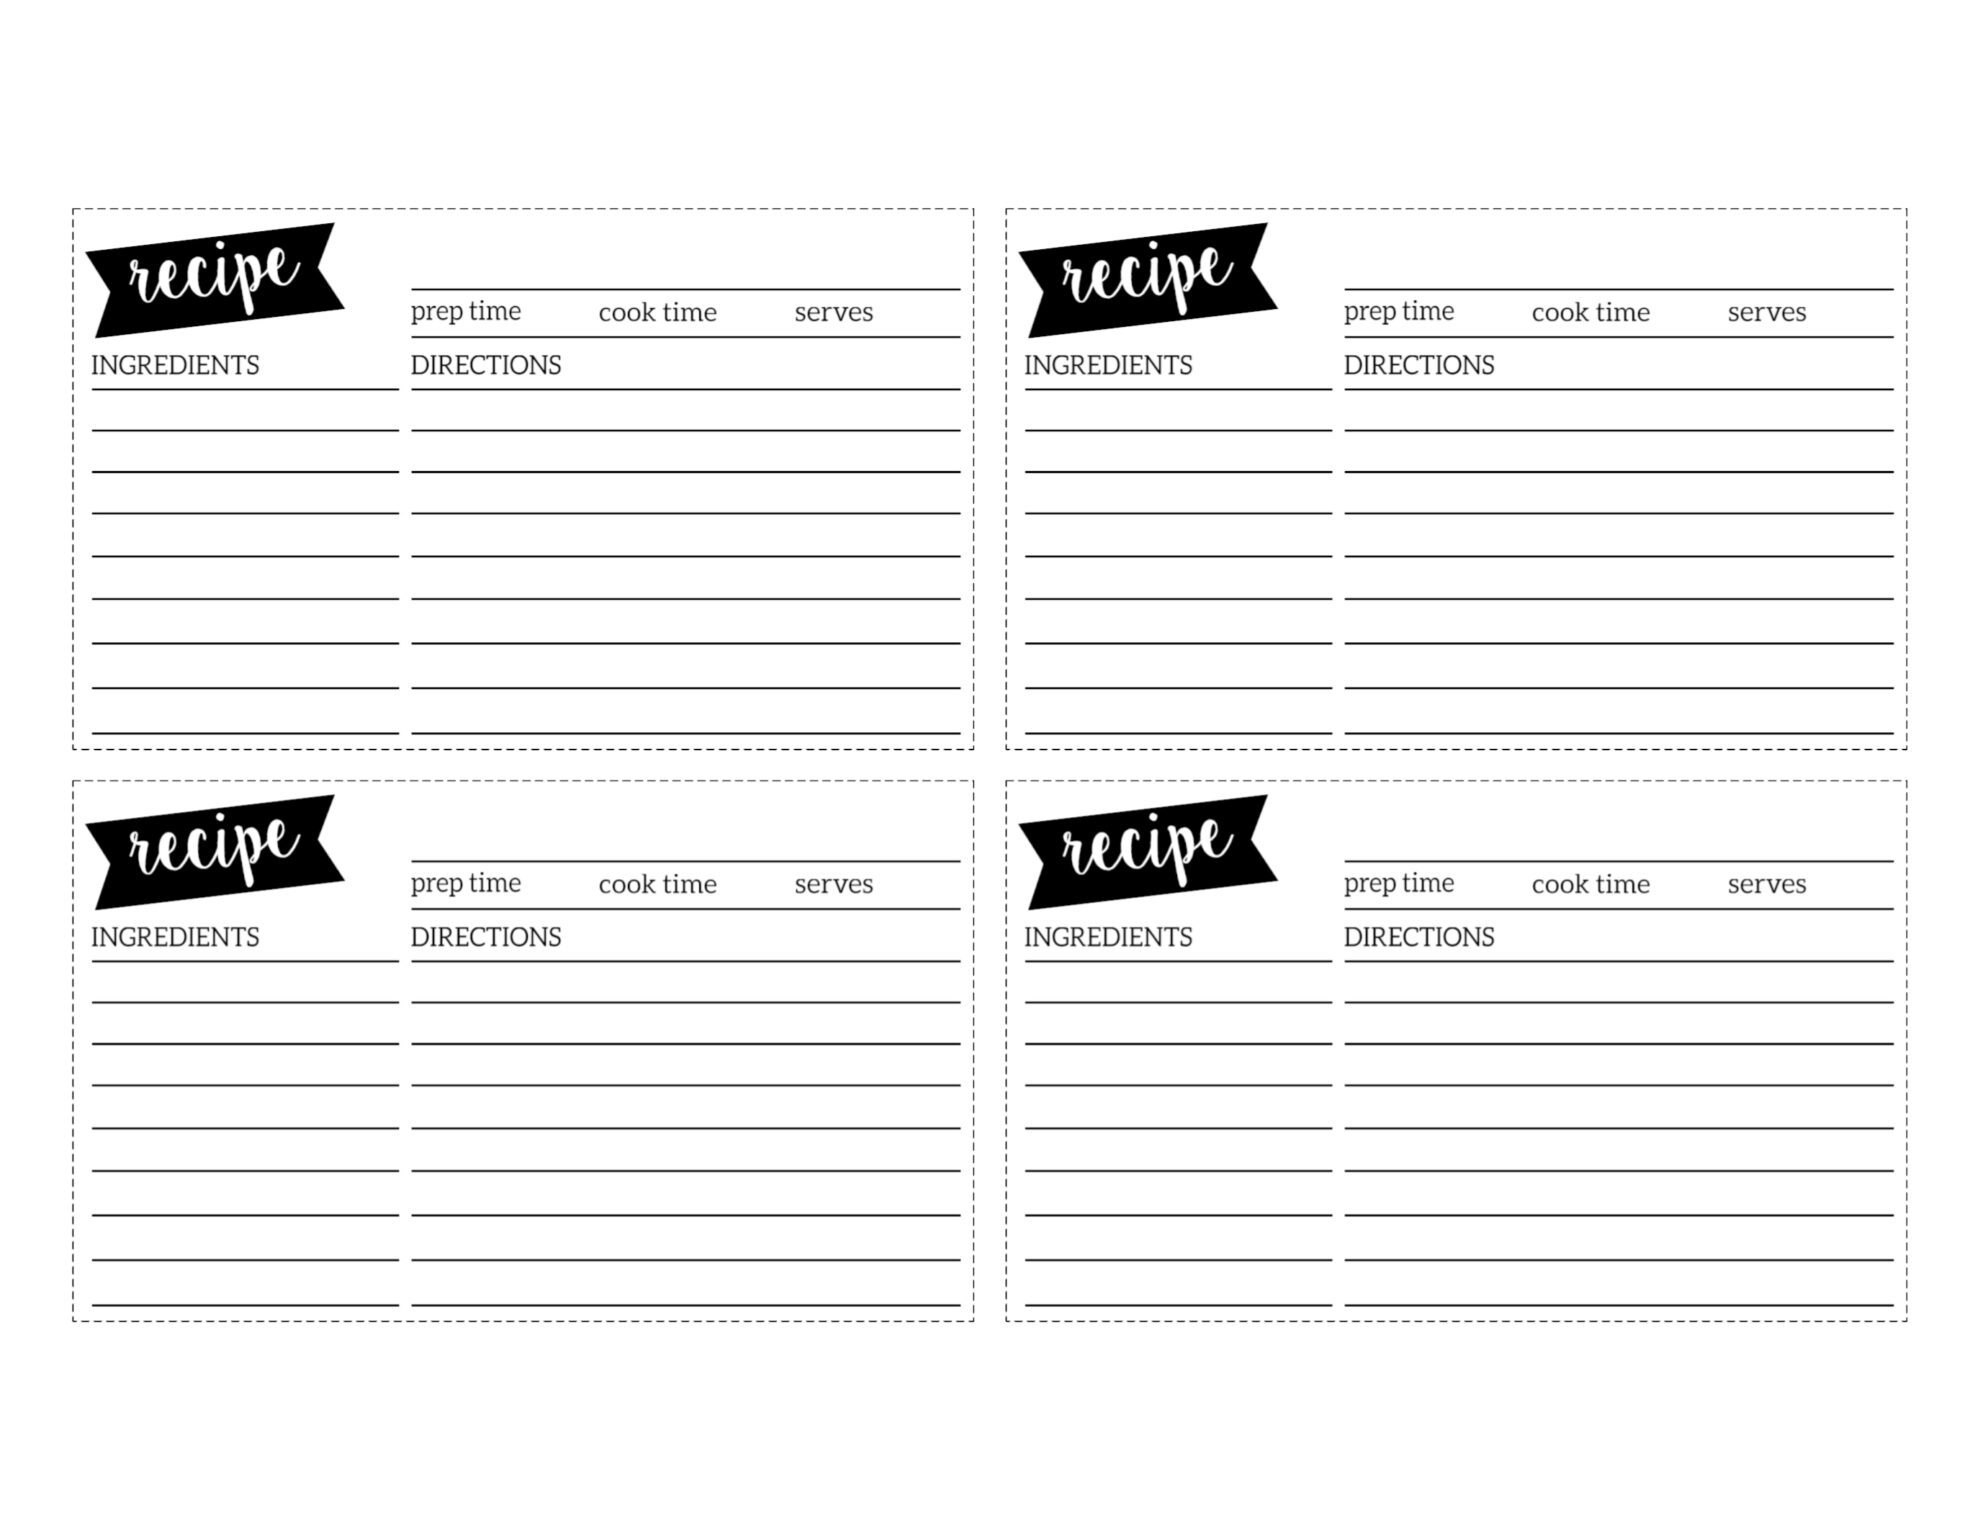 Free Recipe Card Template Printable  Paper Trail Design Pertaining To Template For Cards To Print Free